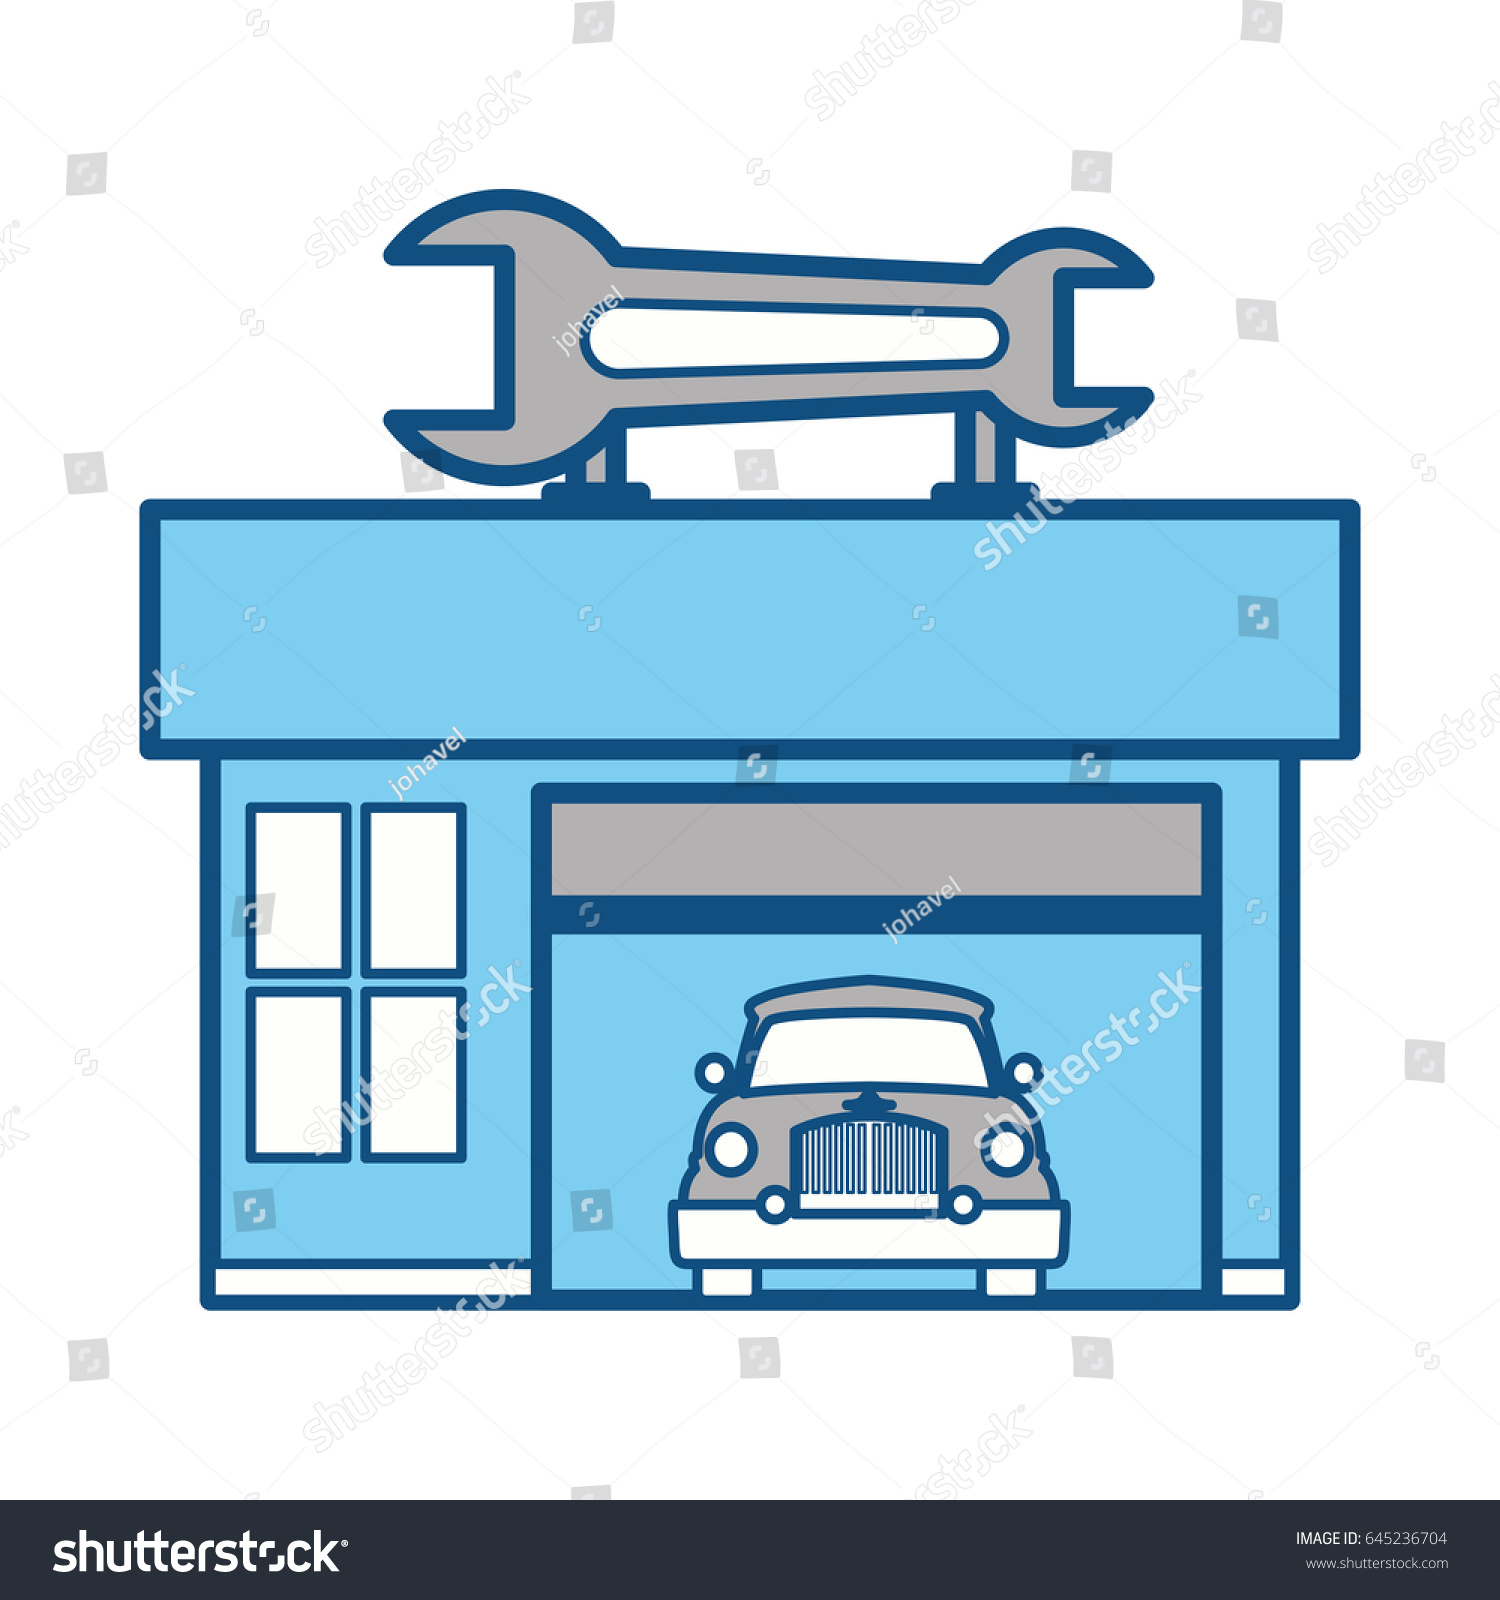 Garage Door Mechanic Stock Vector 645236704 Shutterstock